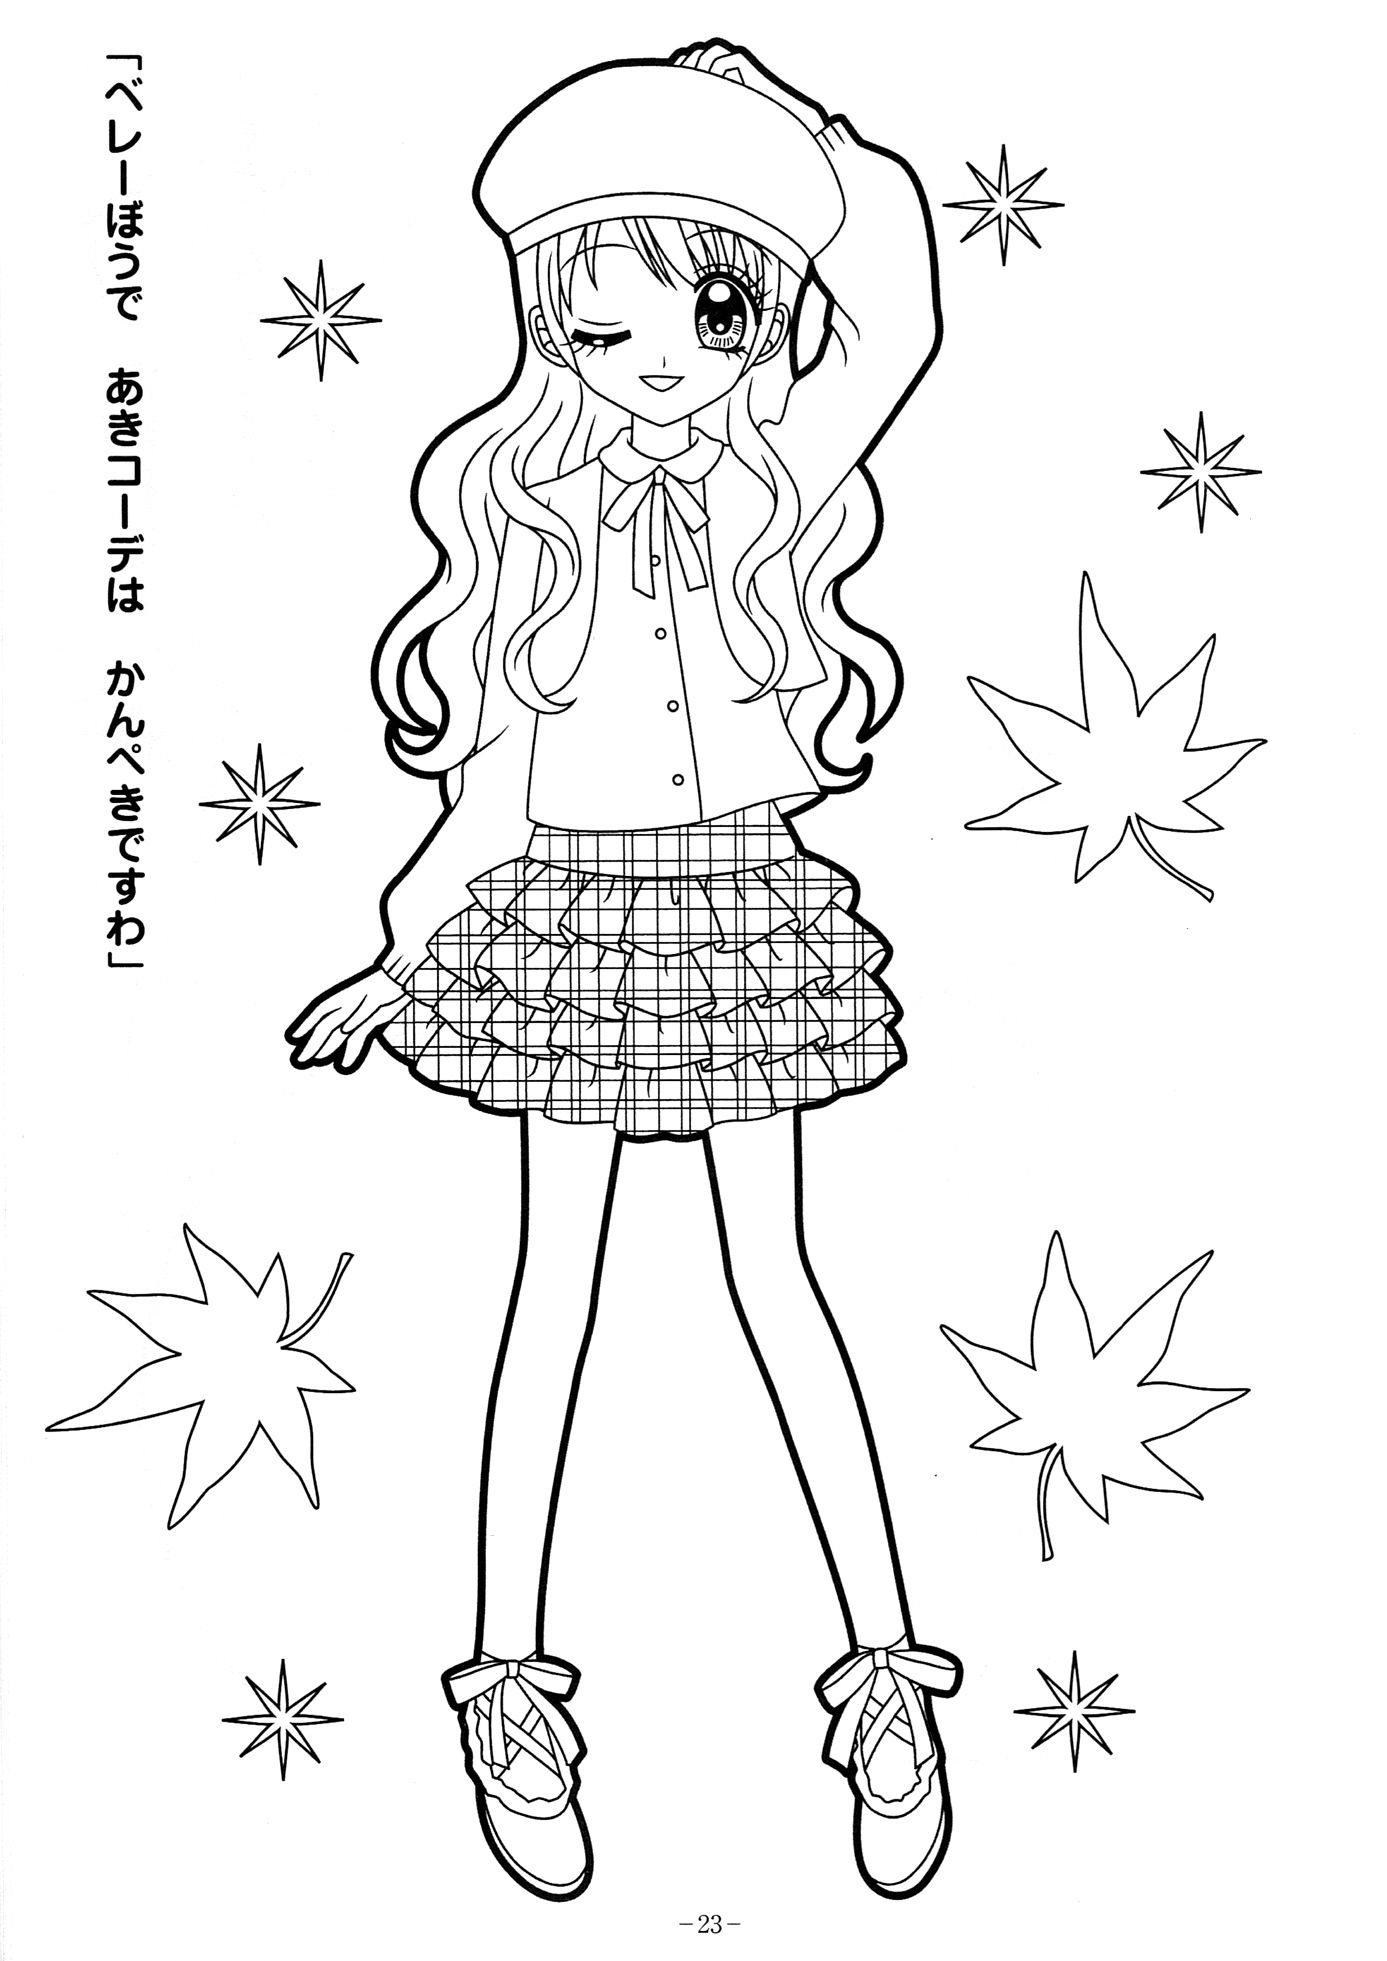 Anime Colouring Pages For Kids To Print Coloring Pages For Girls Cute Coloring Pages Unicorn Coloring Pages